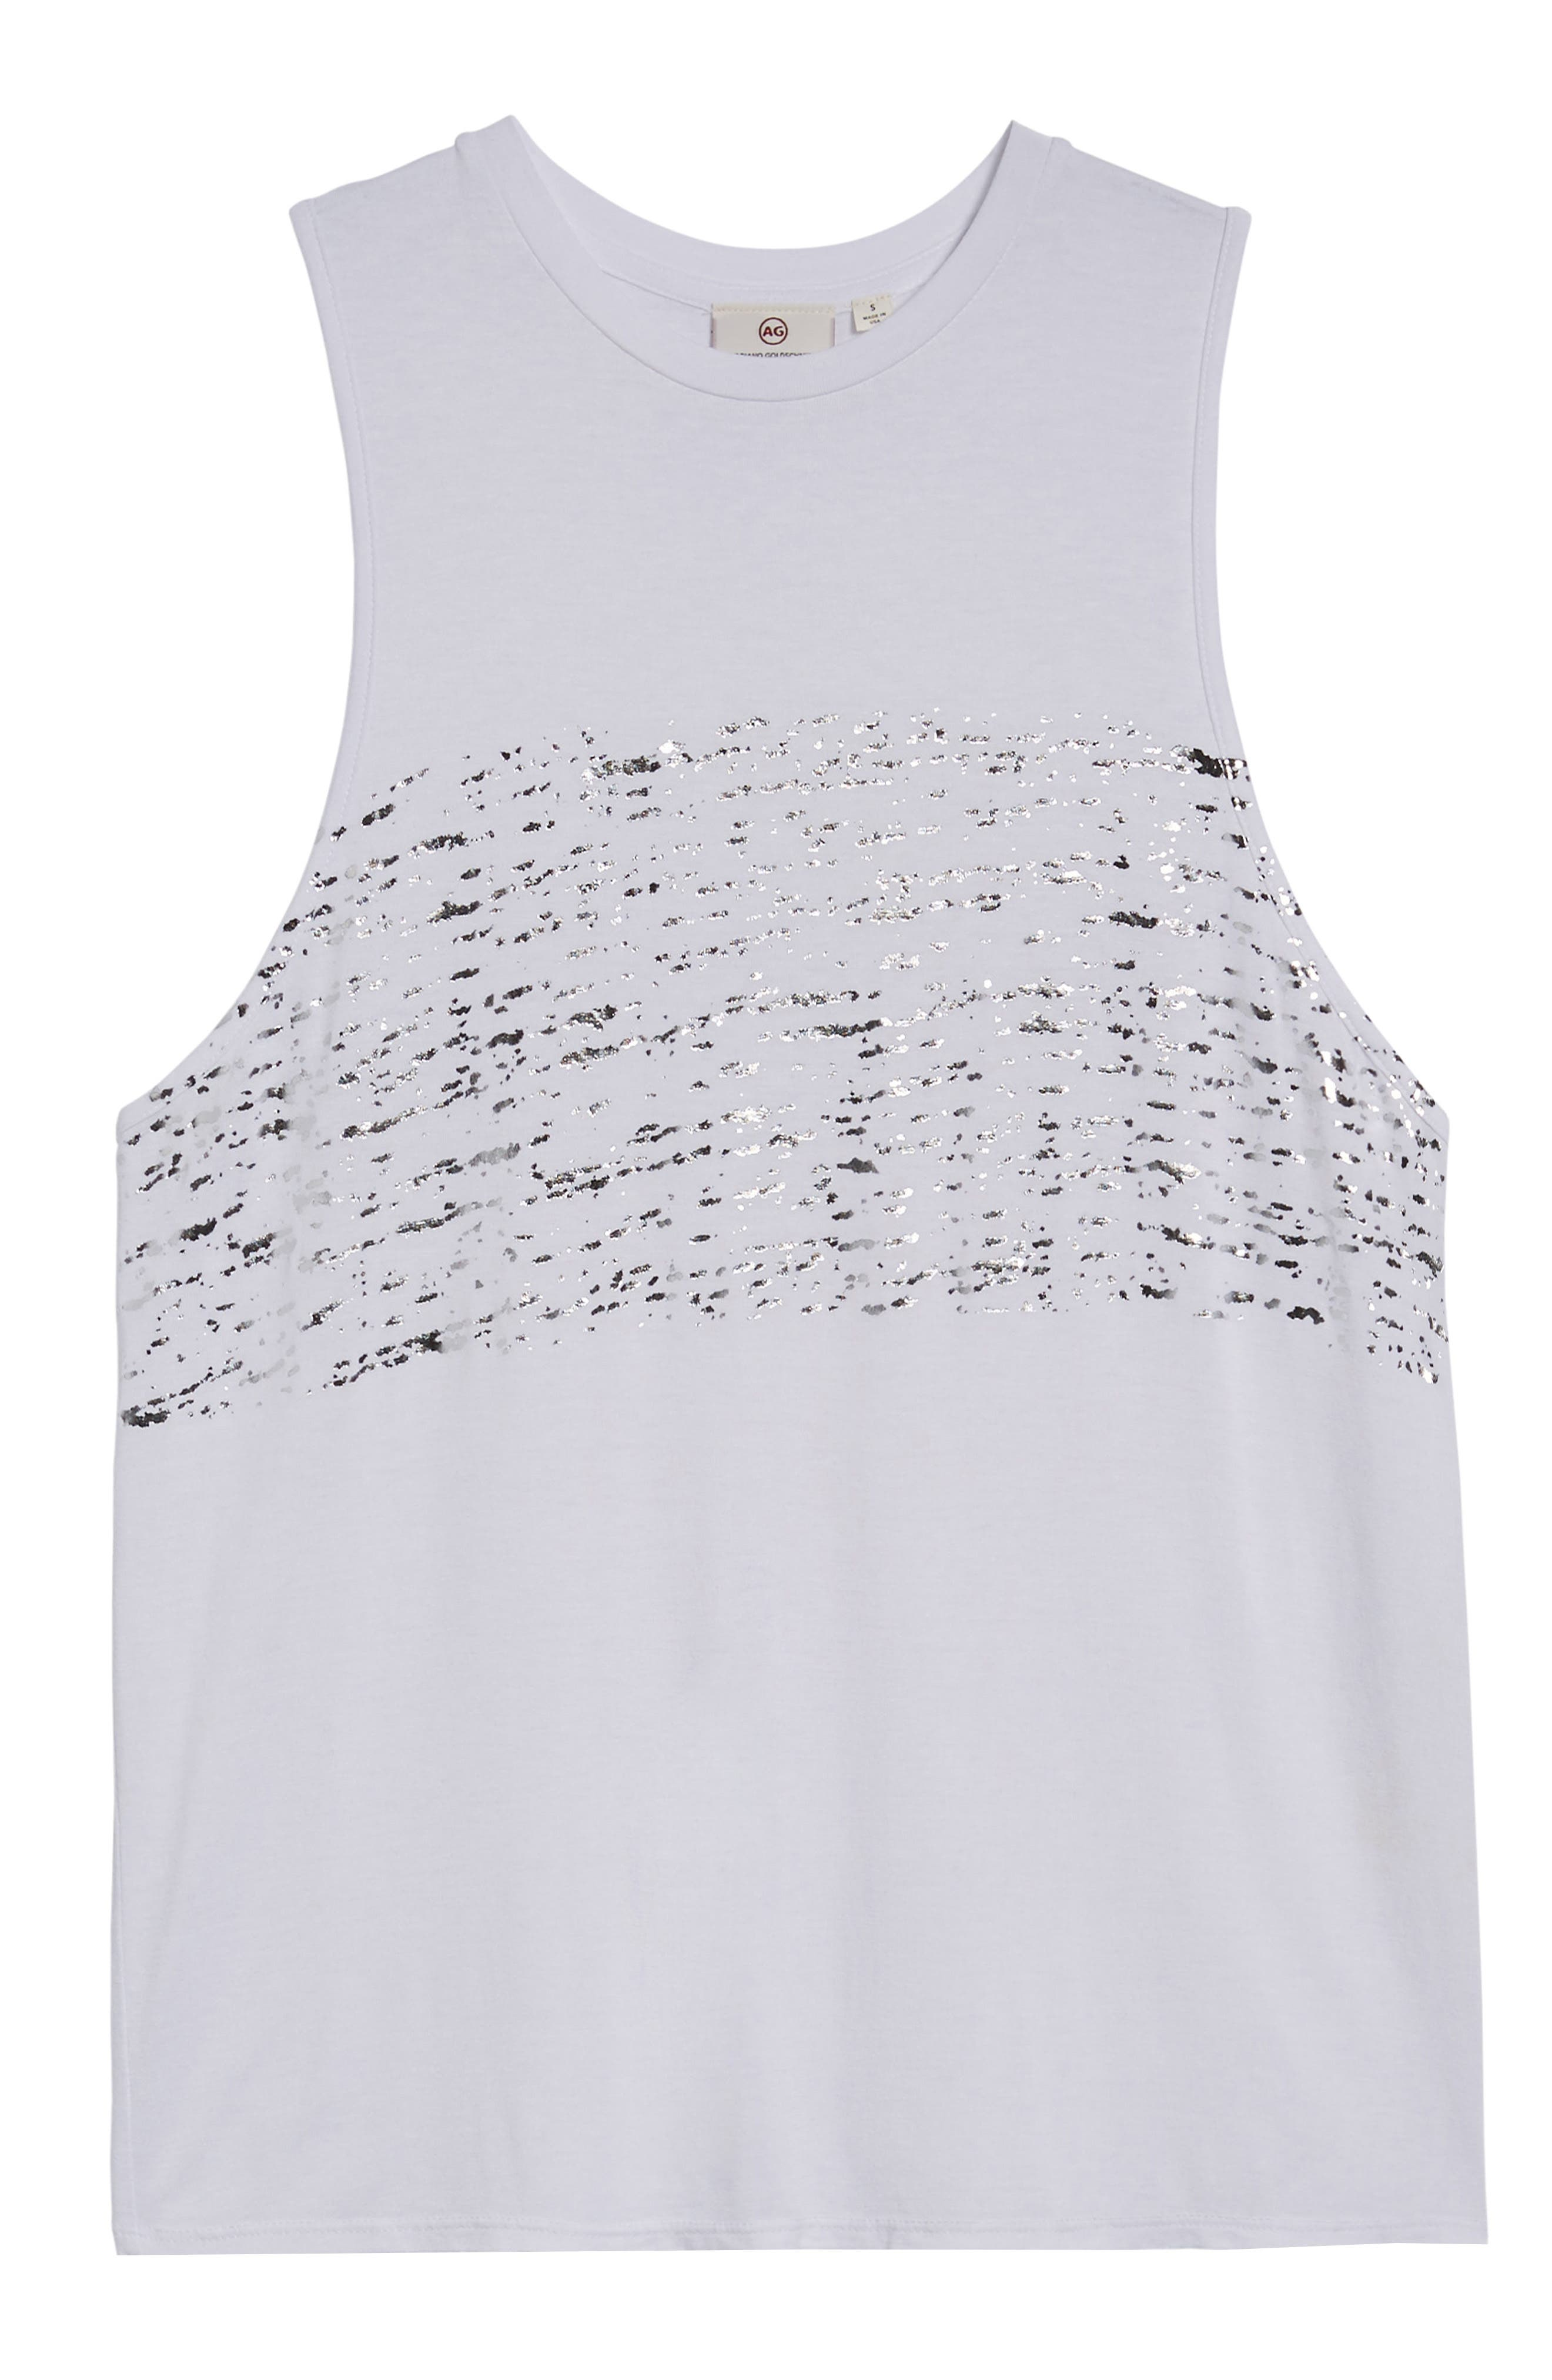 Clio Tank,                             Alternate thumbnail 6, color,                             Distressed Silver Foil/ White